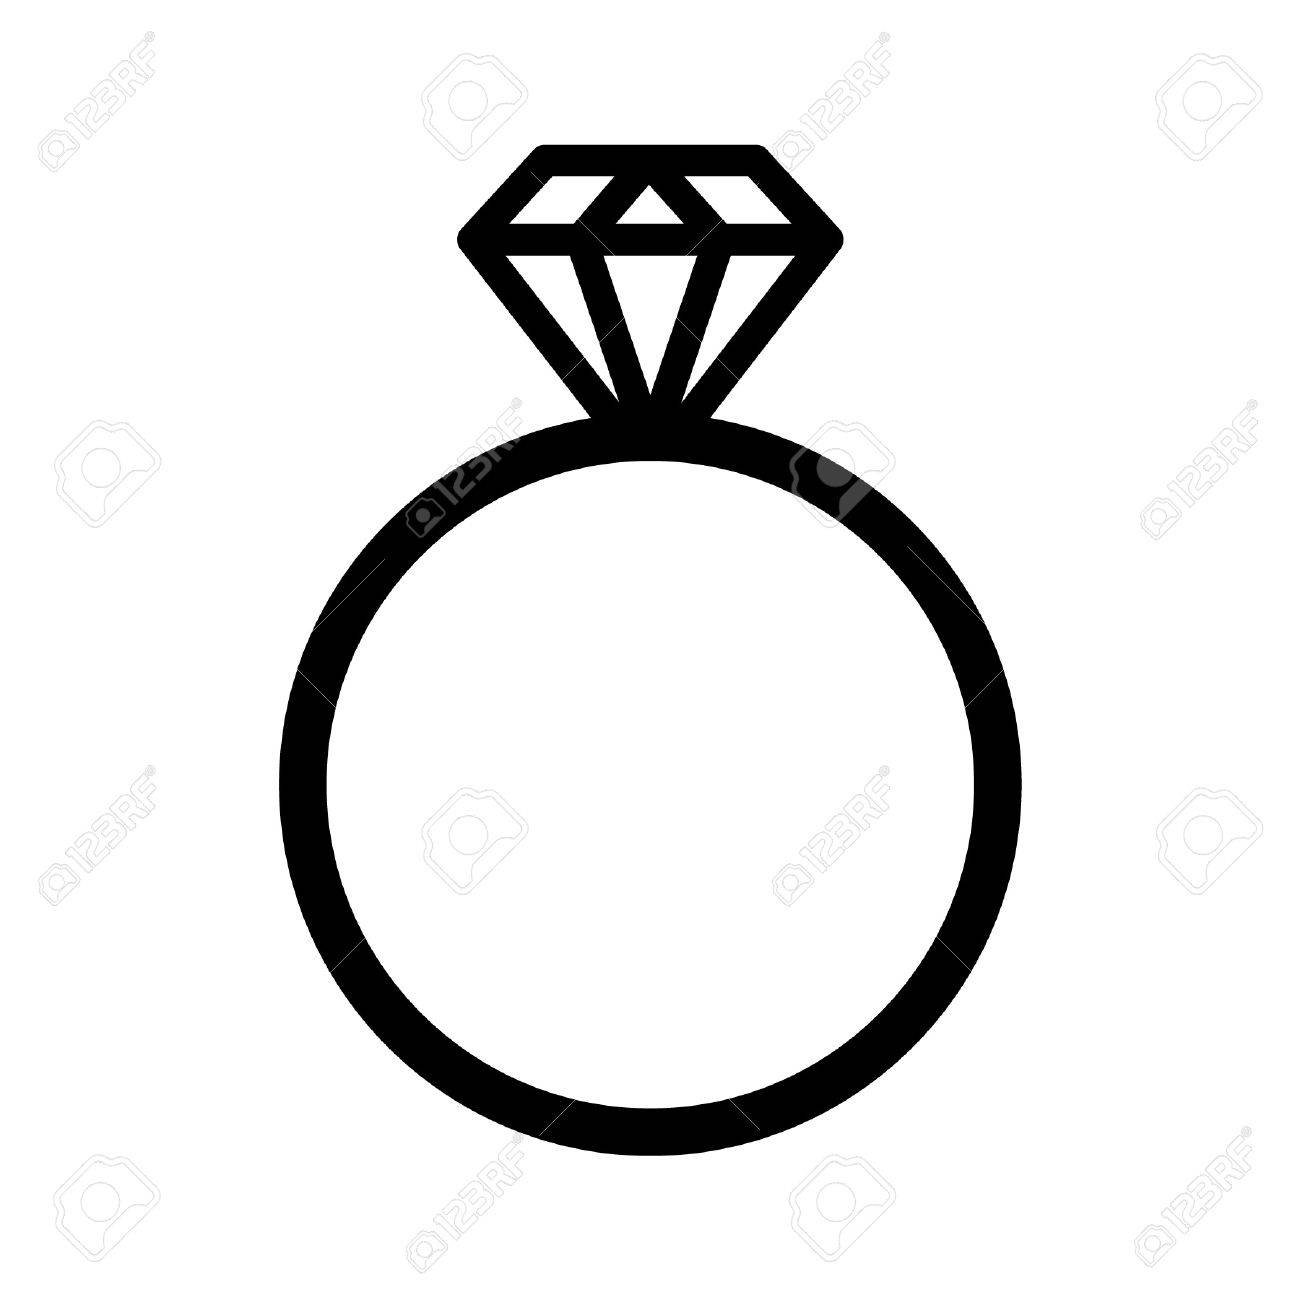 Diamond Engagement Ring Line Art Icon For Websites Royalty Free